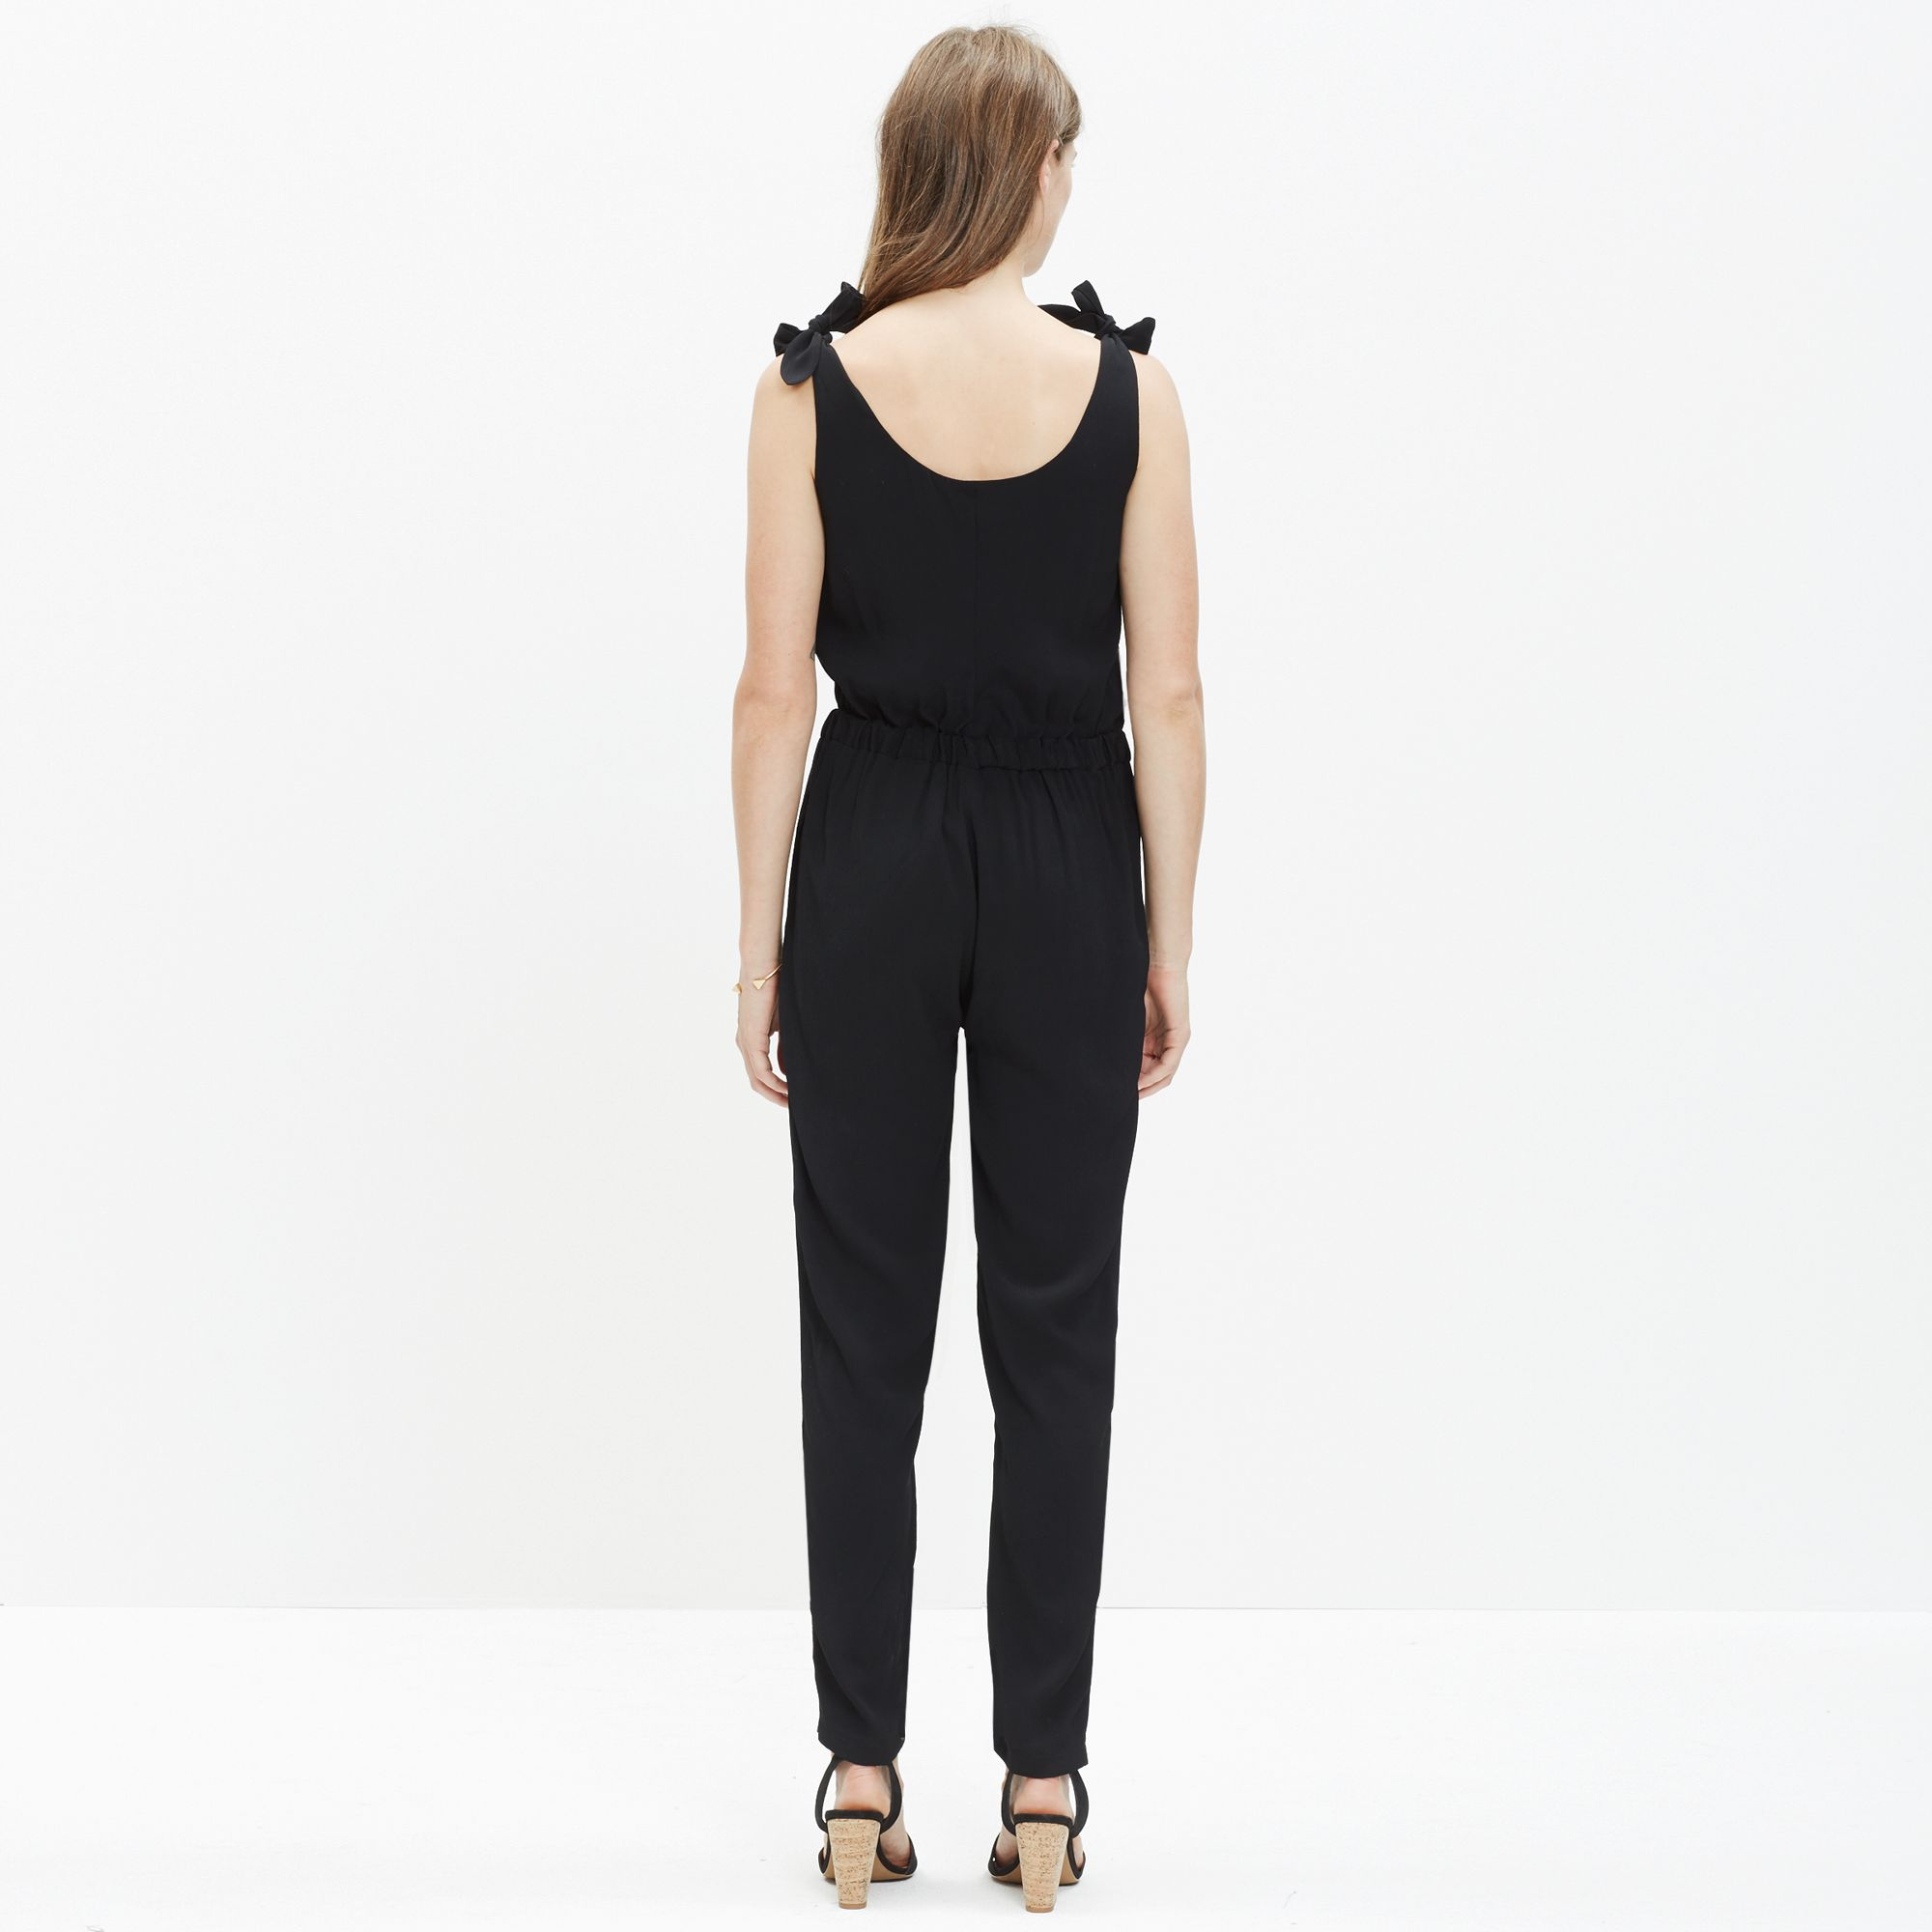 Largest Supplier Cheap Price Buy Cheap Find Great DUNGAREES - Jumpsuits Ainea Clearance Sale Online Sale Cheap Online bxBKpVR